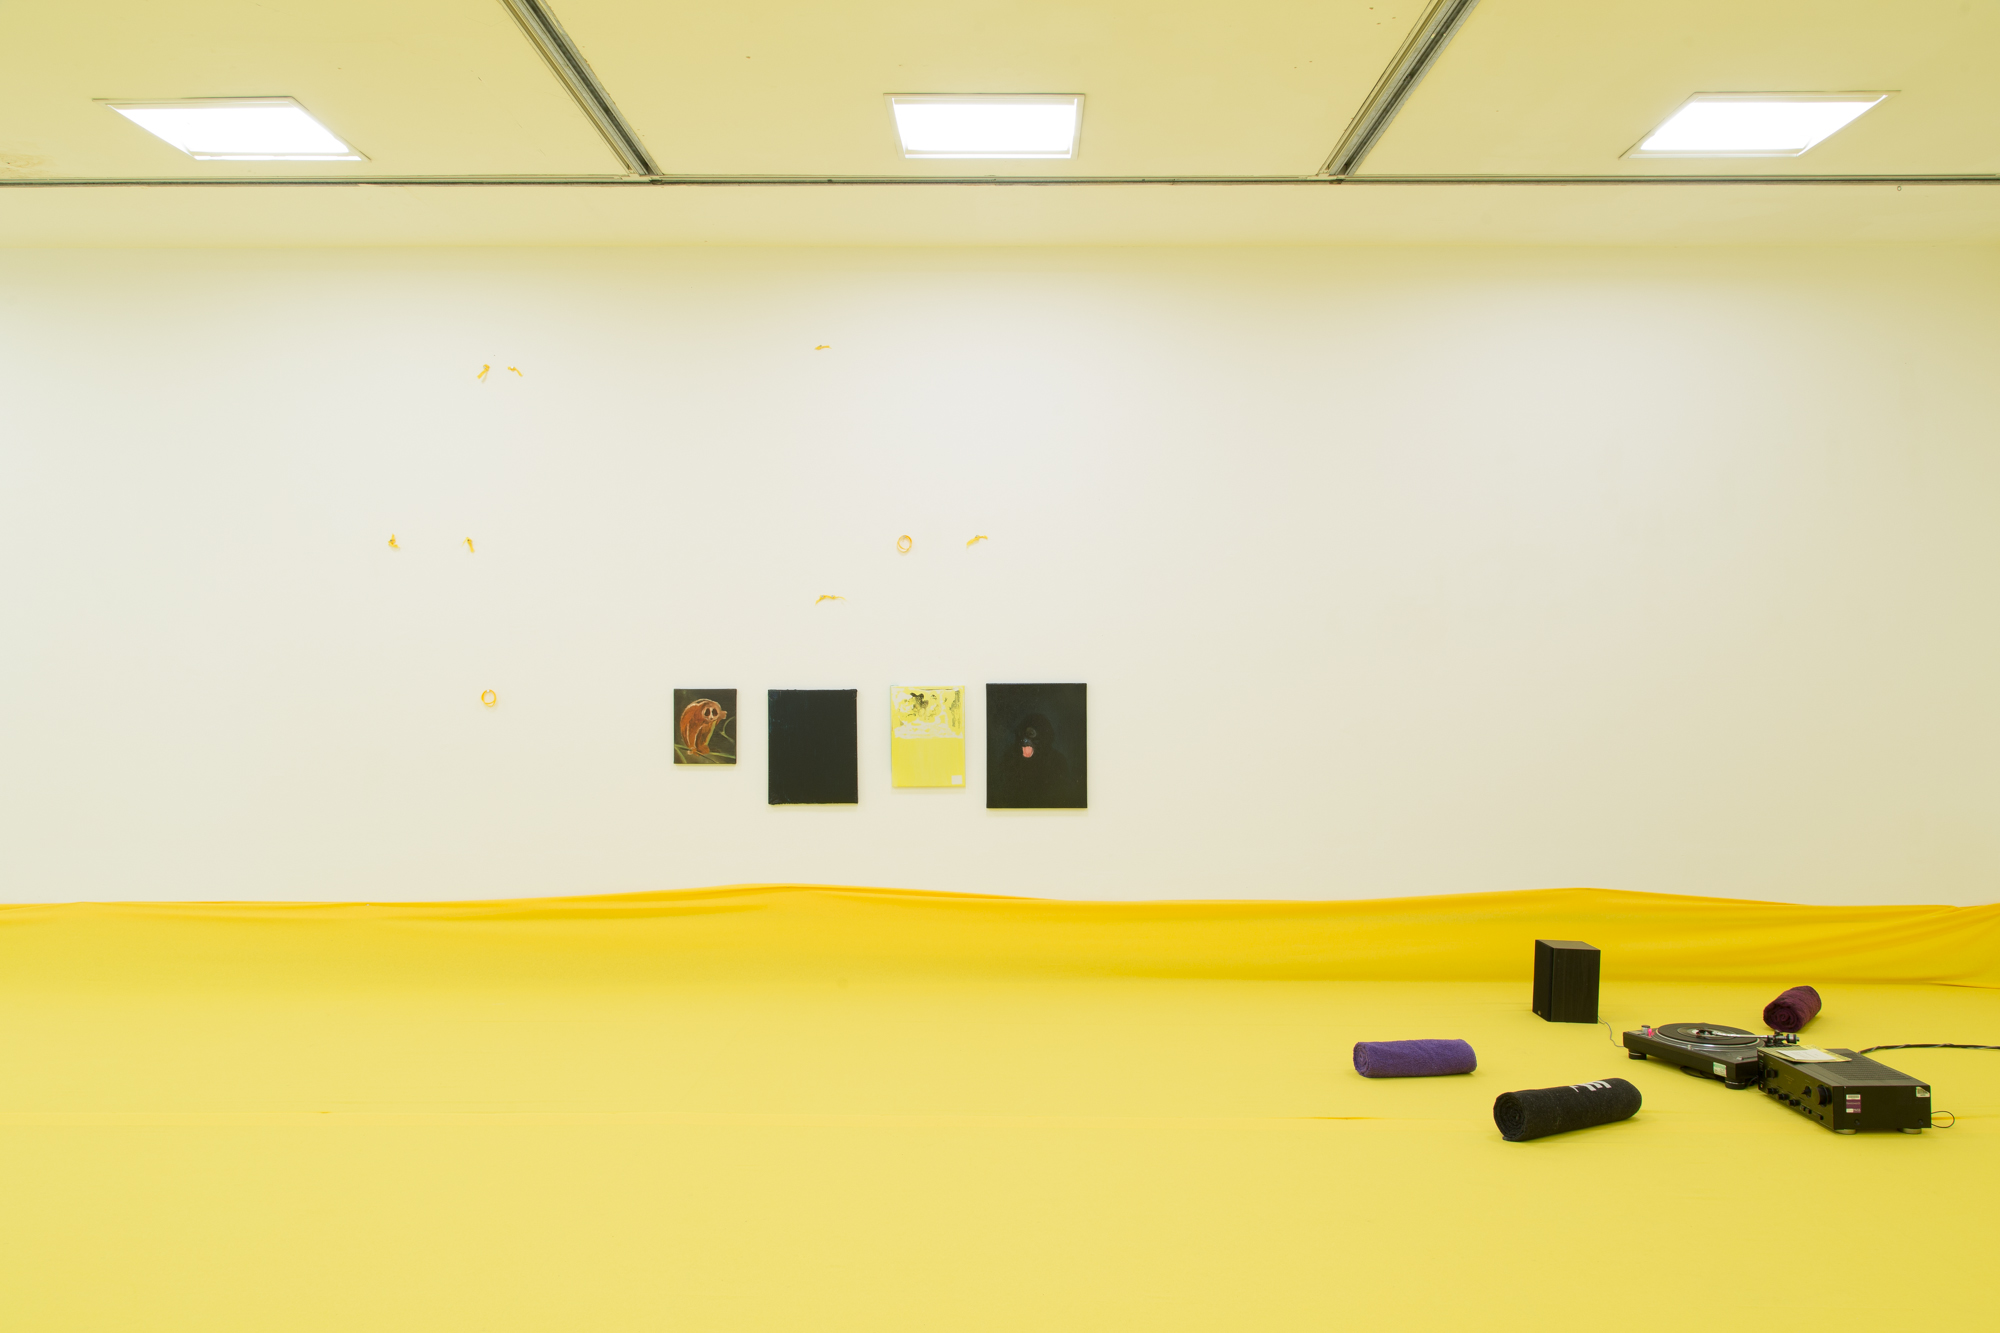 Installation view of 'Do U Feel Like We Do? at Intermedia Gallery, CCA Glasgow 2014. (Cotton, X-frame, photographic background, studio lights, towels, oil paint, turntable, amplifier, speakers, silicon gel bracelets, screws, inkjet prints, coins, plaster and video paint.) Photo: Tom Nolan